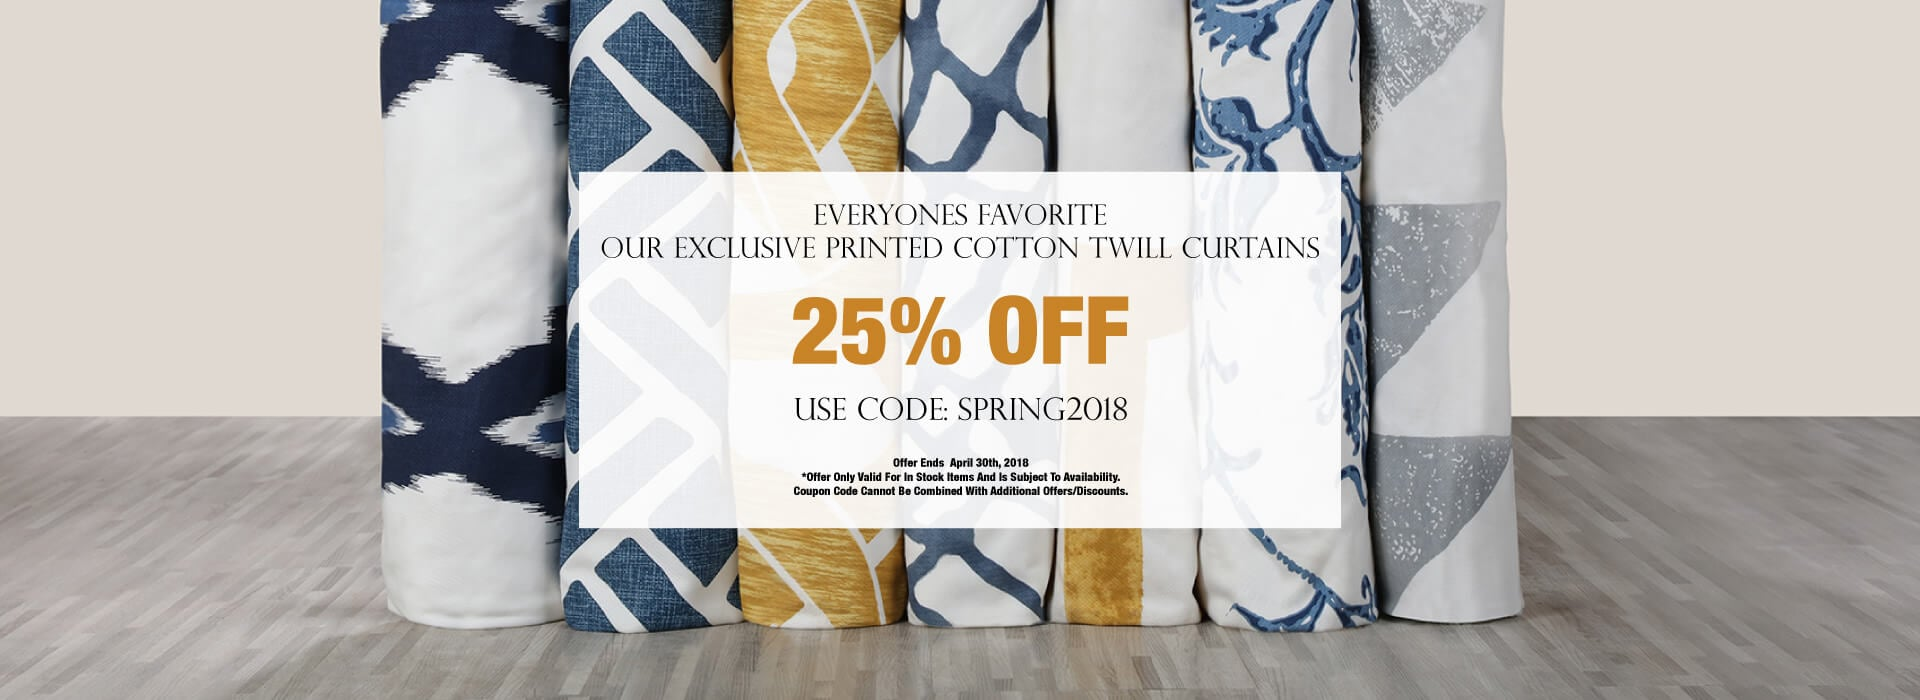 Printed Cotton Twill Curtains - 25% OFF